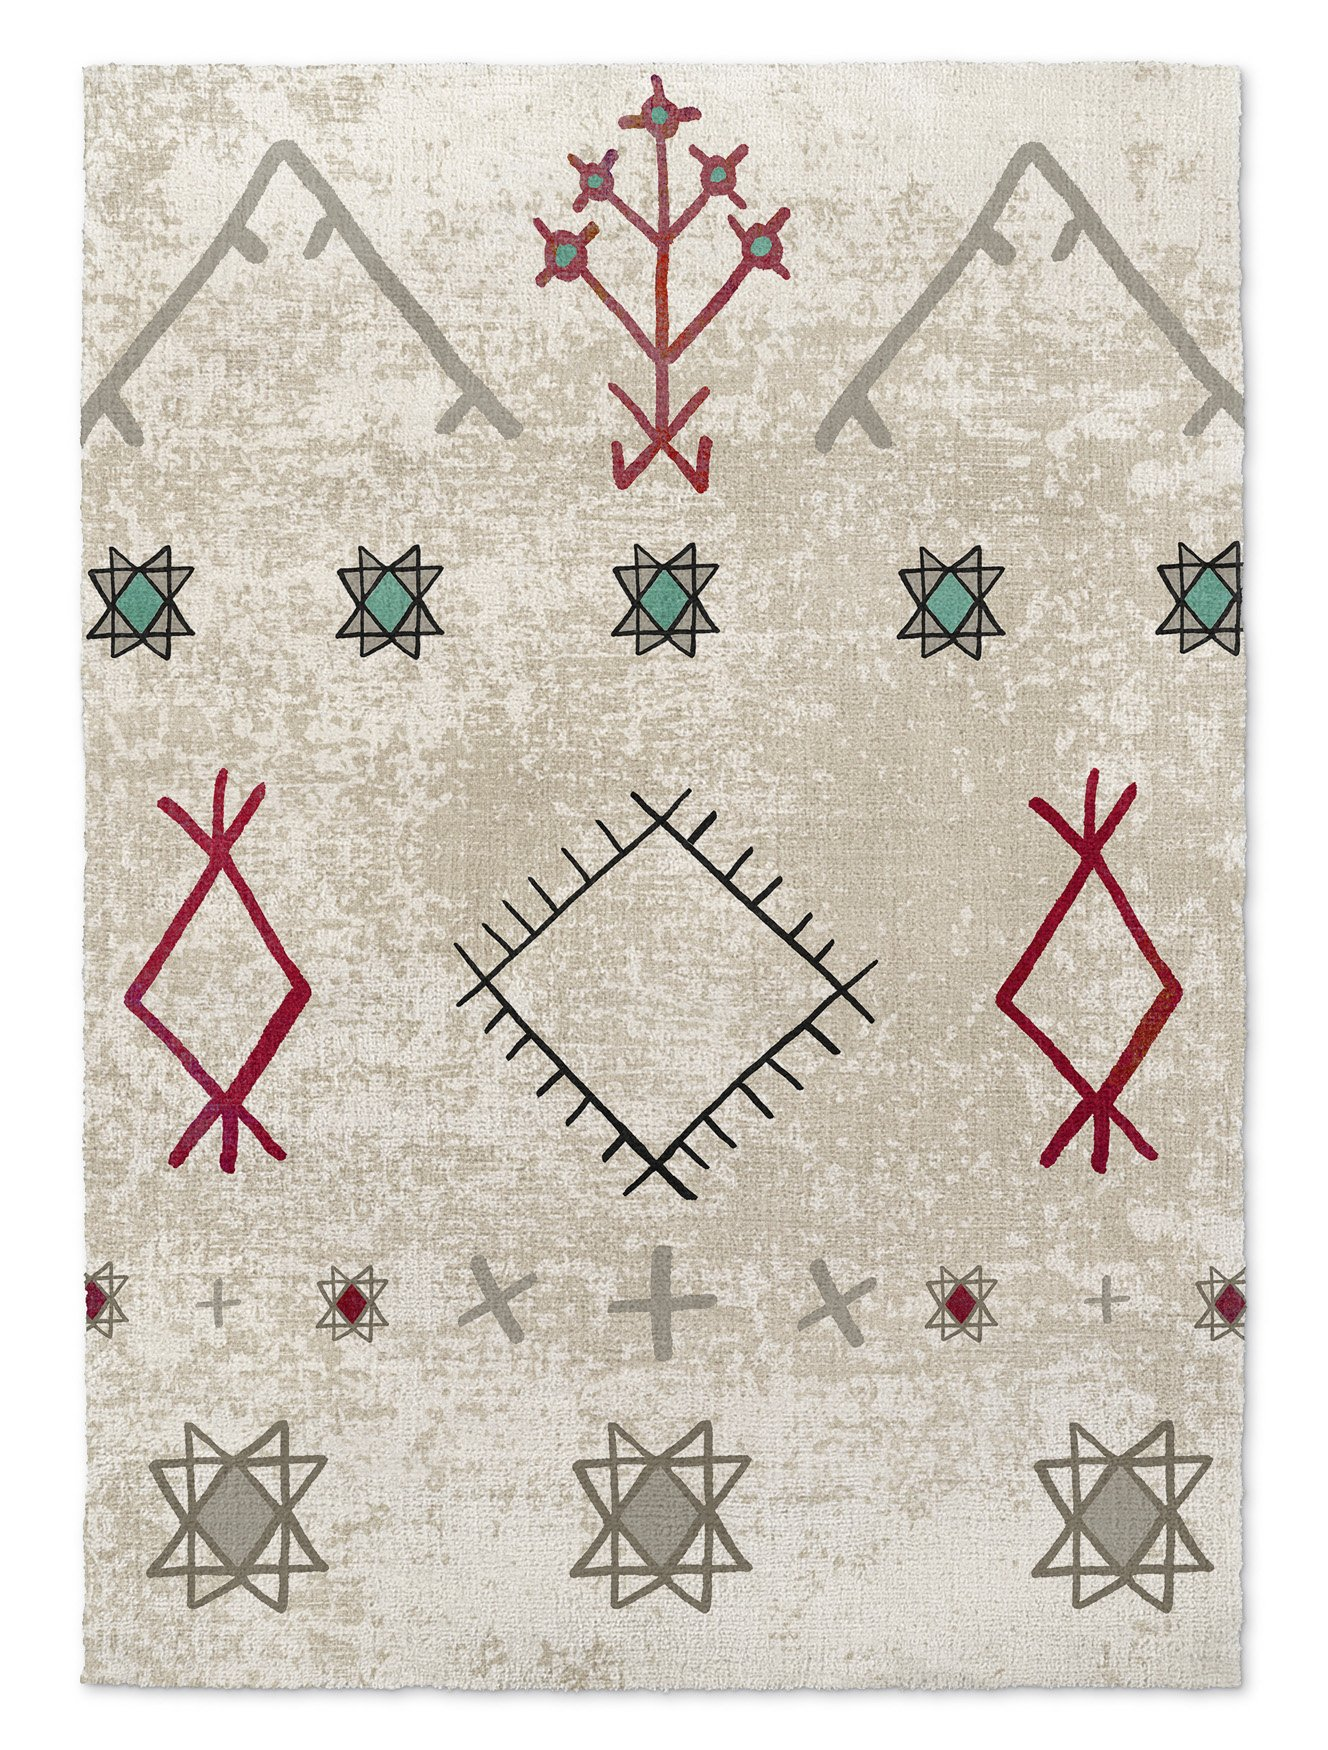 KAVKA Designs Nasse Area Rug, (Red/Turquoise/Ivory) - NAVAJO Collection, Size: 3x5x.5 - (TELAVC8093RUG35)